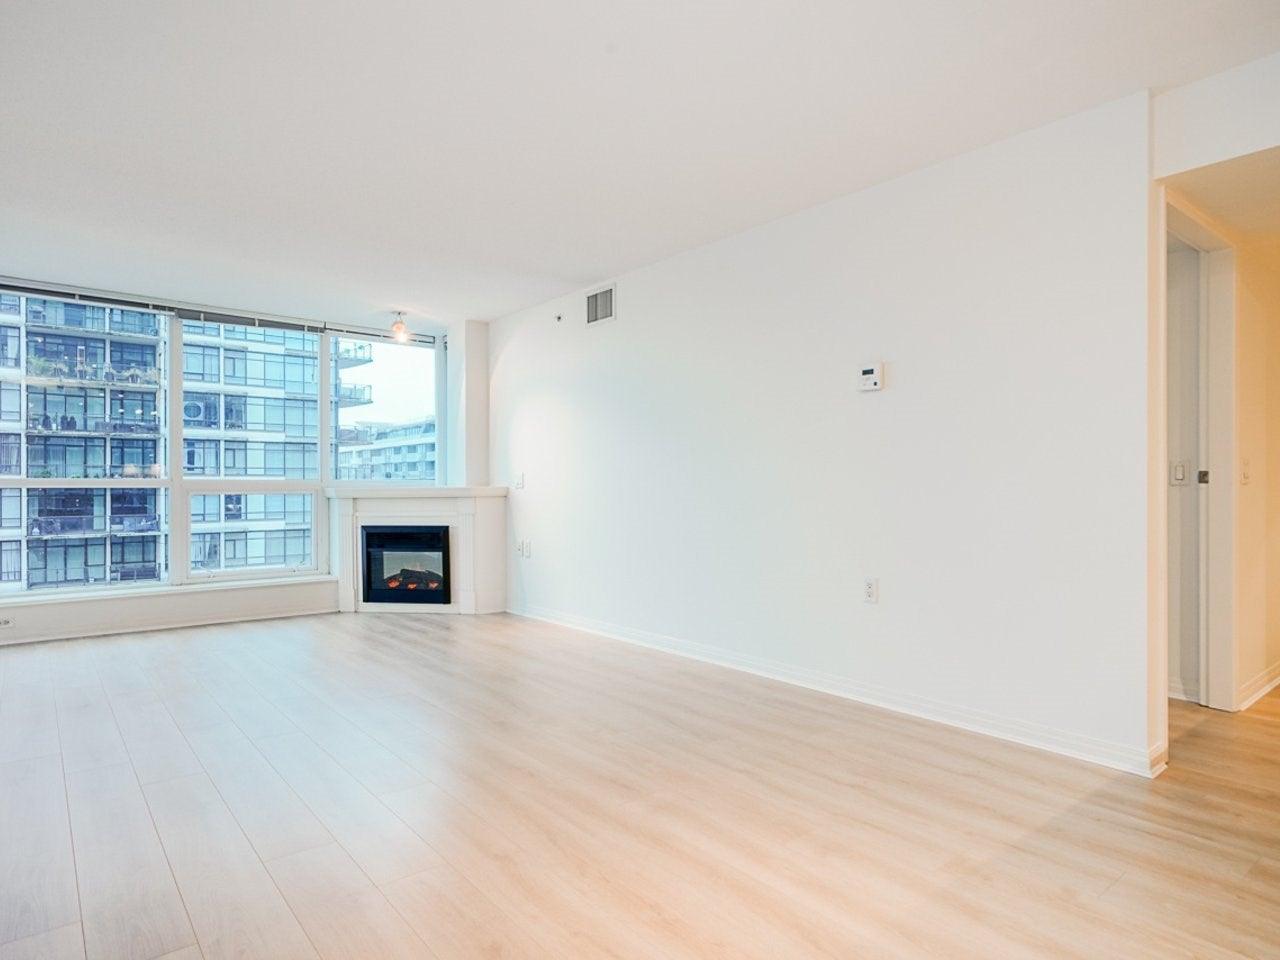 604 188 E ESPLANADE - Lower Lonsdale Apartment/Condo for sale, 2 Bedrooms (R2528391) - #11